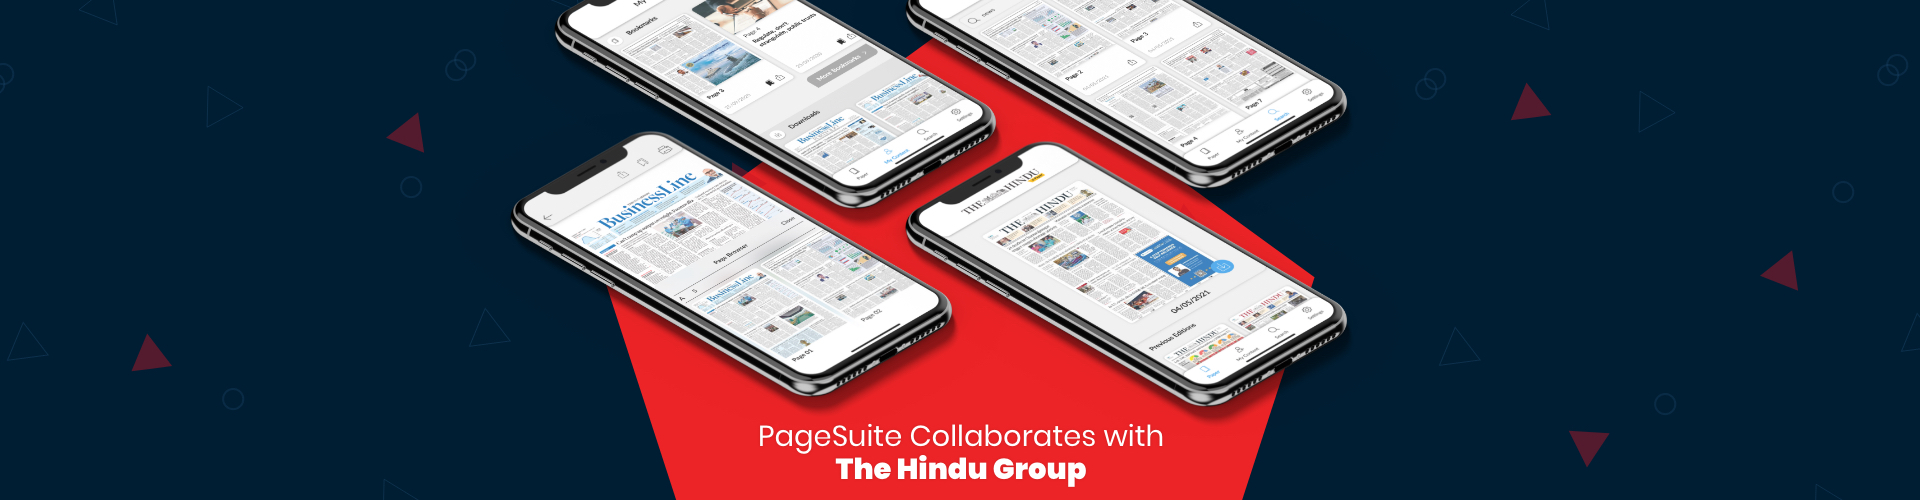 Image of PRESS RELEASE: The Hindu Group Collaborates with PageSuite to Launch New ePaper Apps for Digital Subscribers